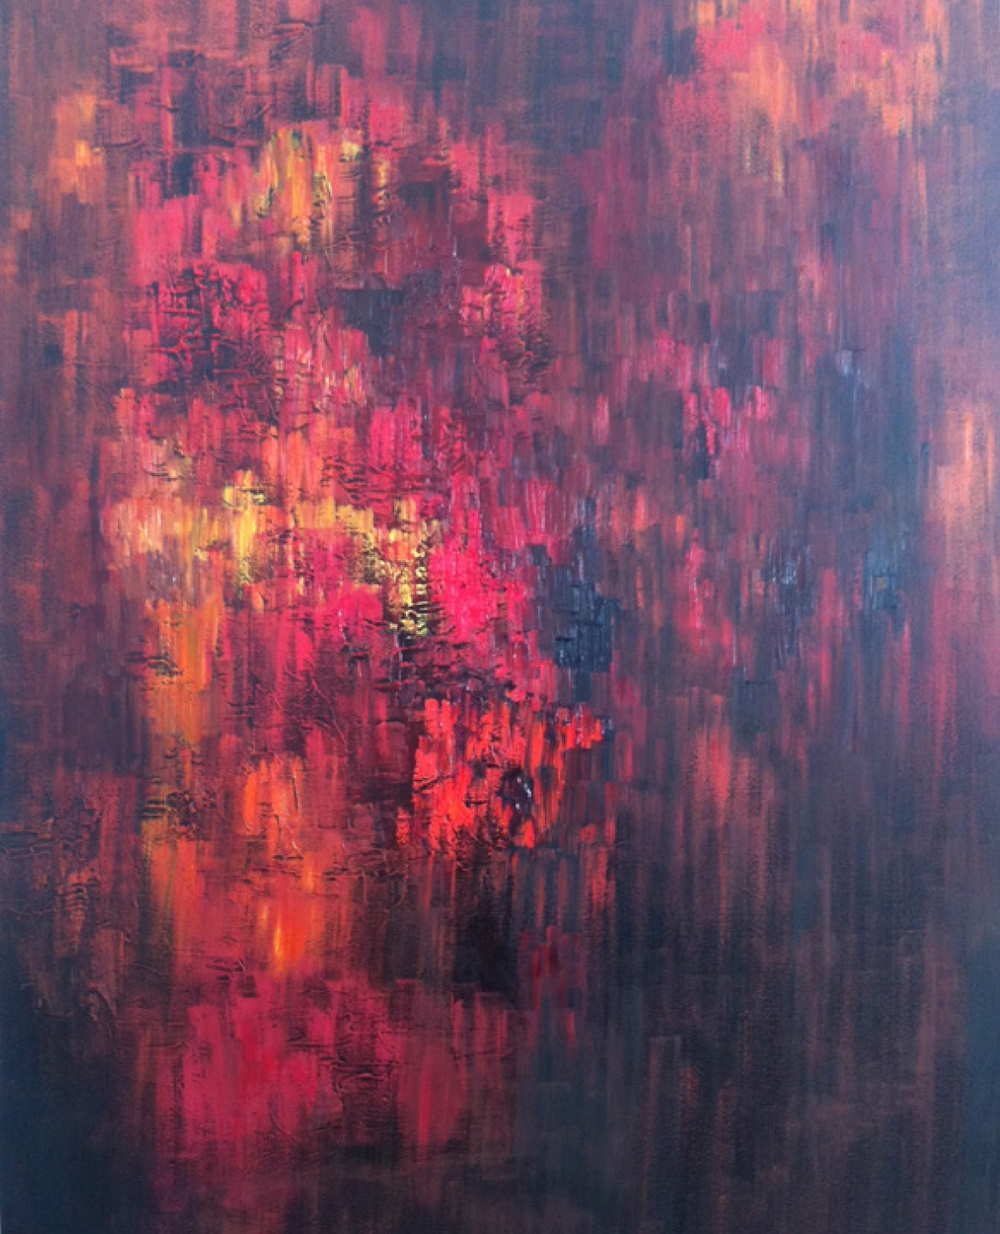 Oil on Canvas 24 x 36, 2012